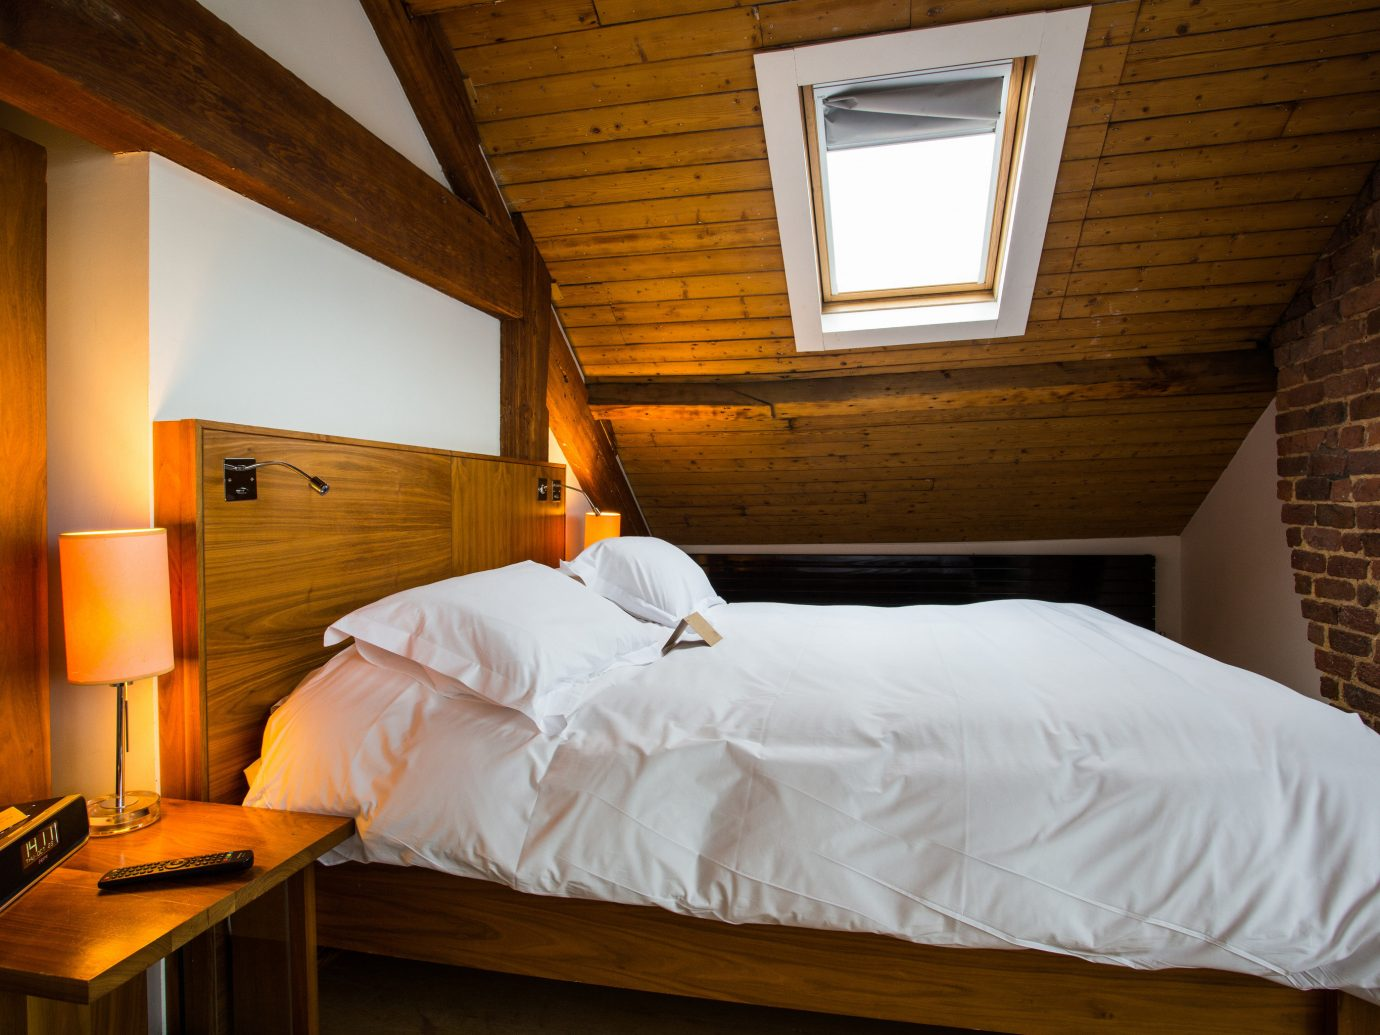 Trip Ideas indoor bed wall room Bedroom furniture wood ceiling Suite house white home interior design daylighting hotel